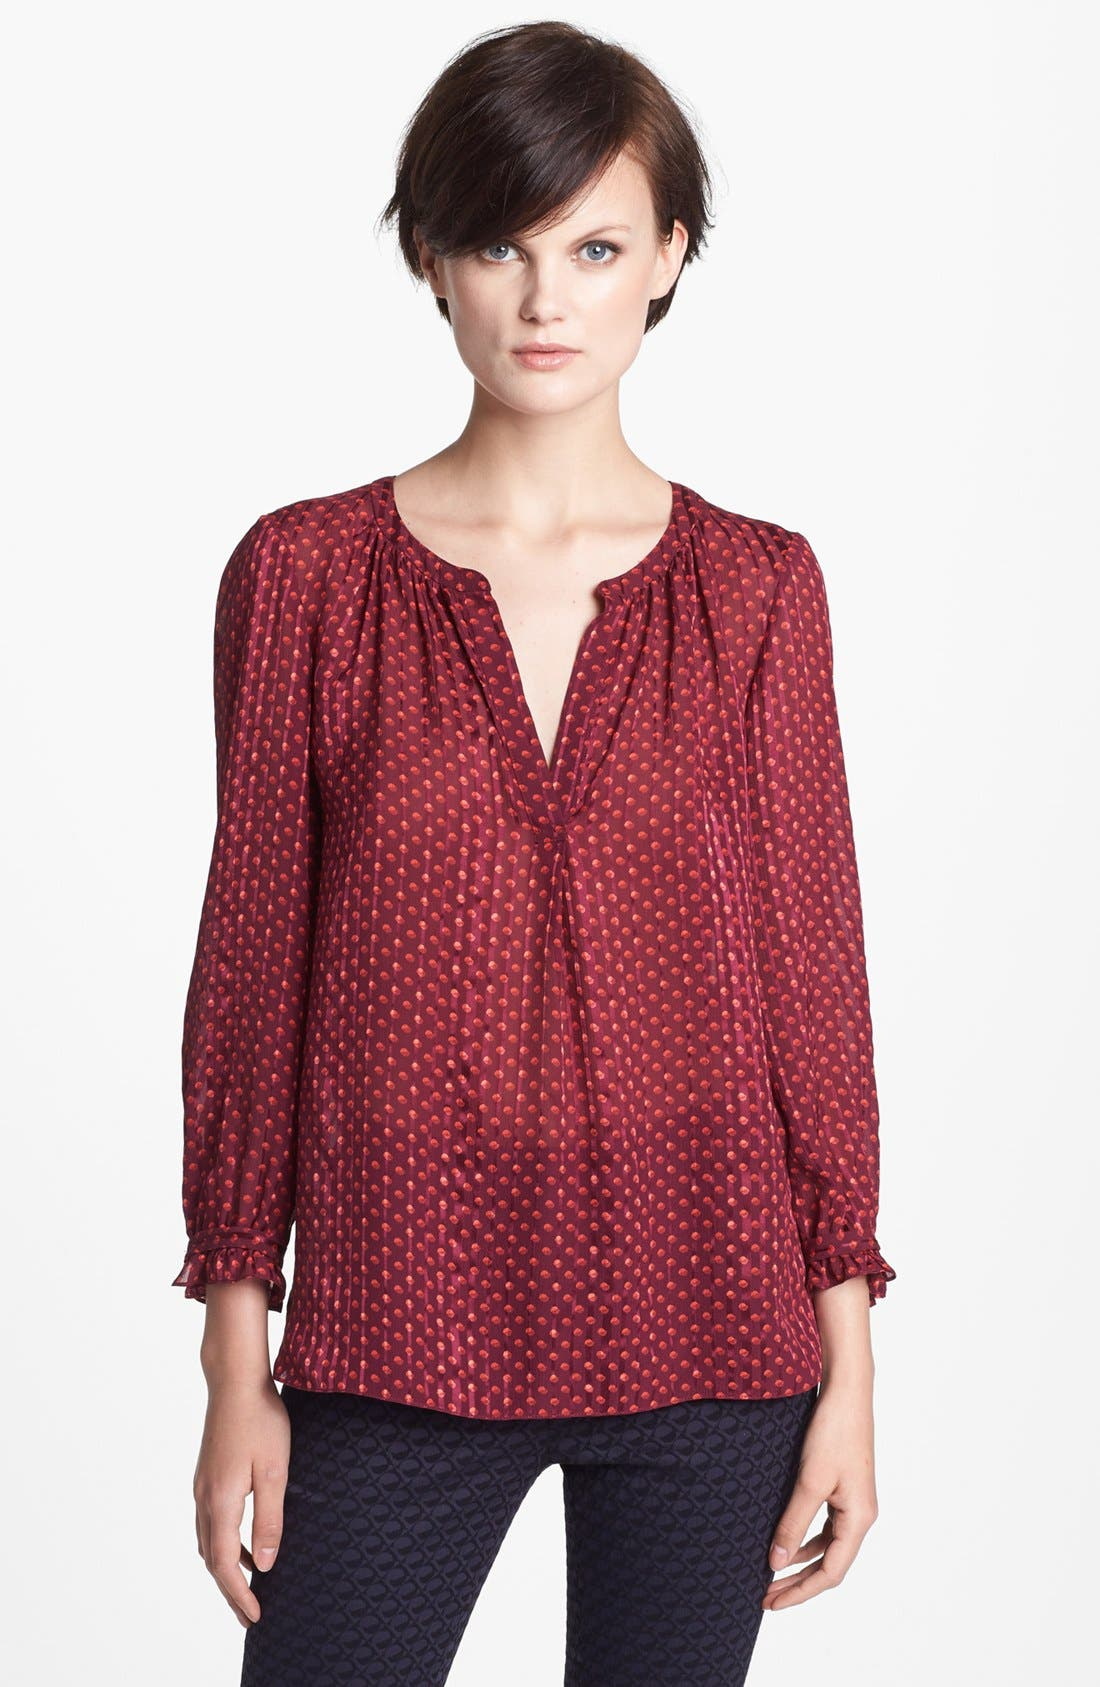 Alternate Image 1 Selected - MARC BY MARC JACOBS 'Minetta' Print Silk Top